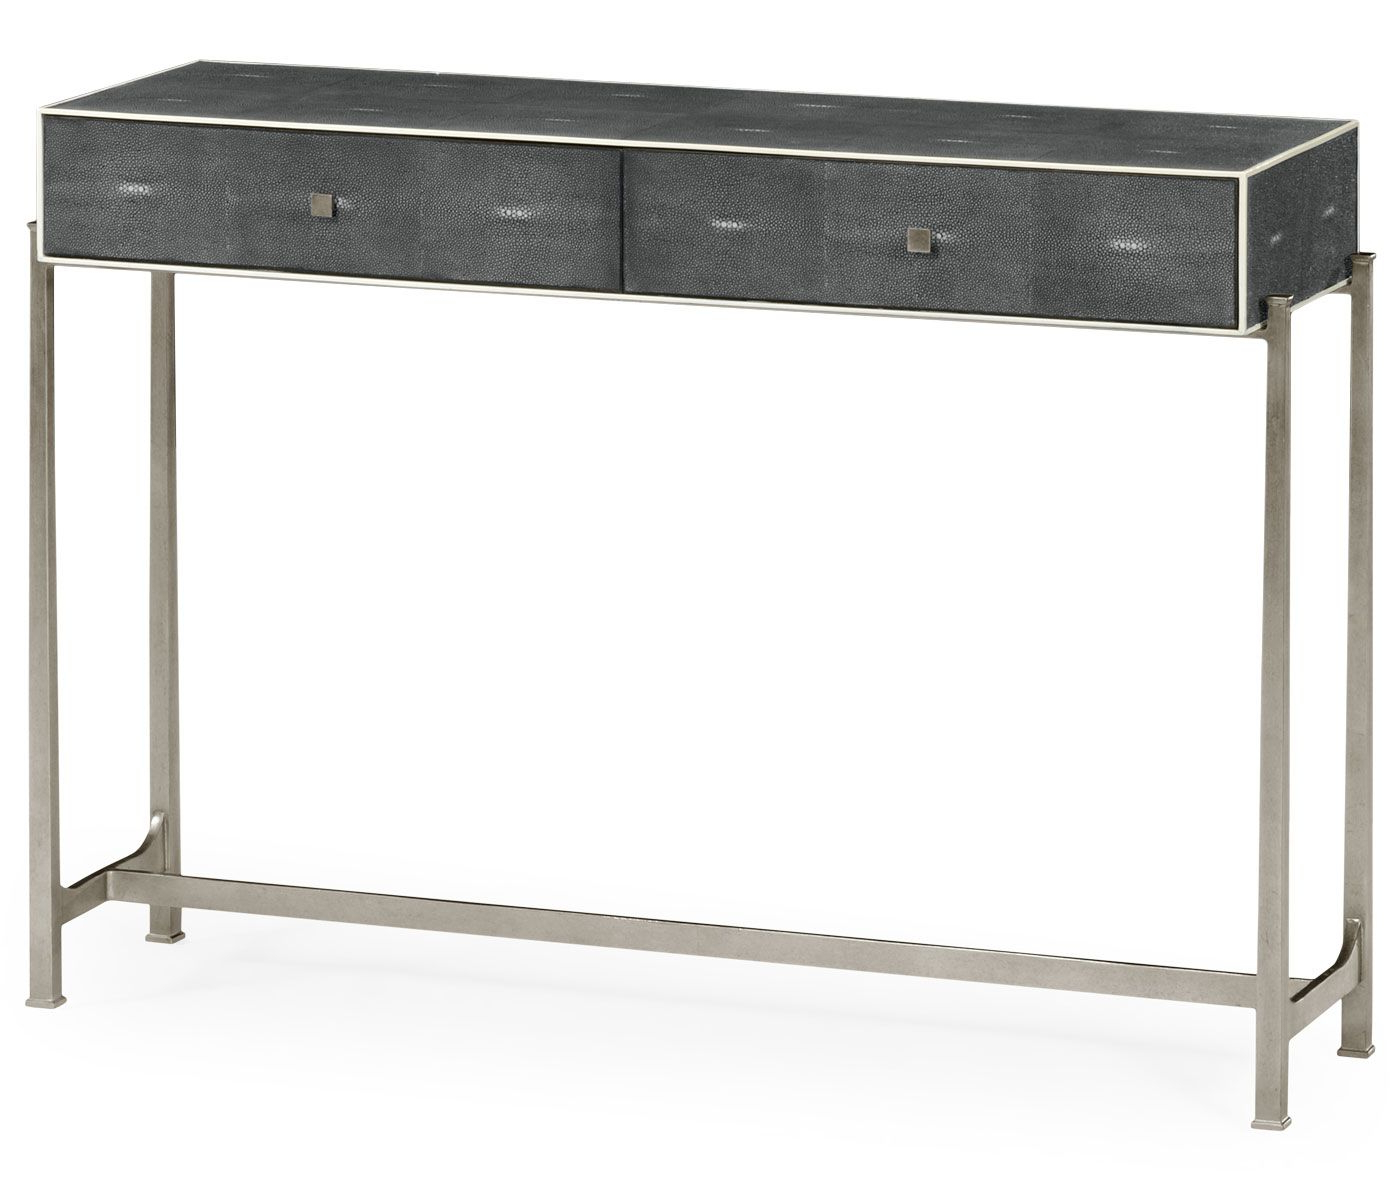 Faux Anthracite Shagreen Console With Silver Base | Santana Inside Faux Shagreen Console Tables (View 3 of 20)